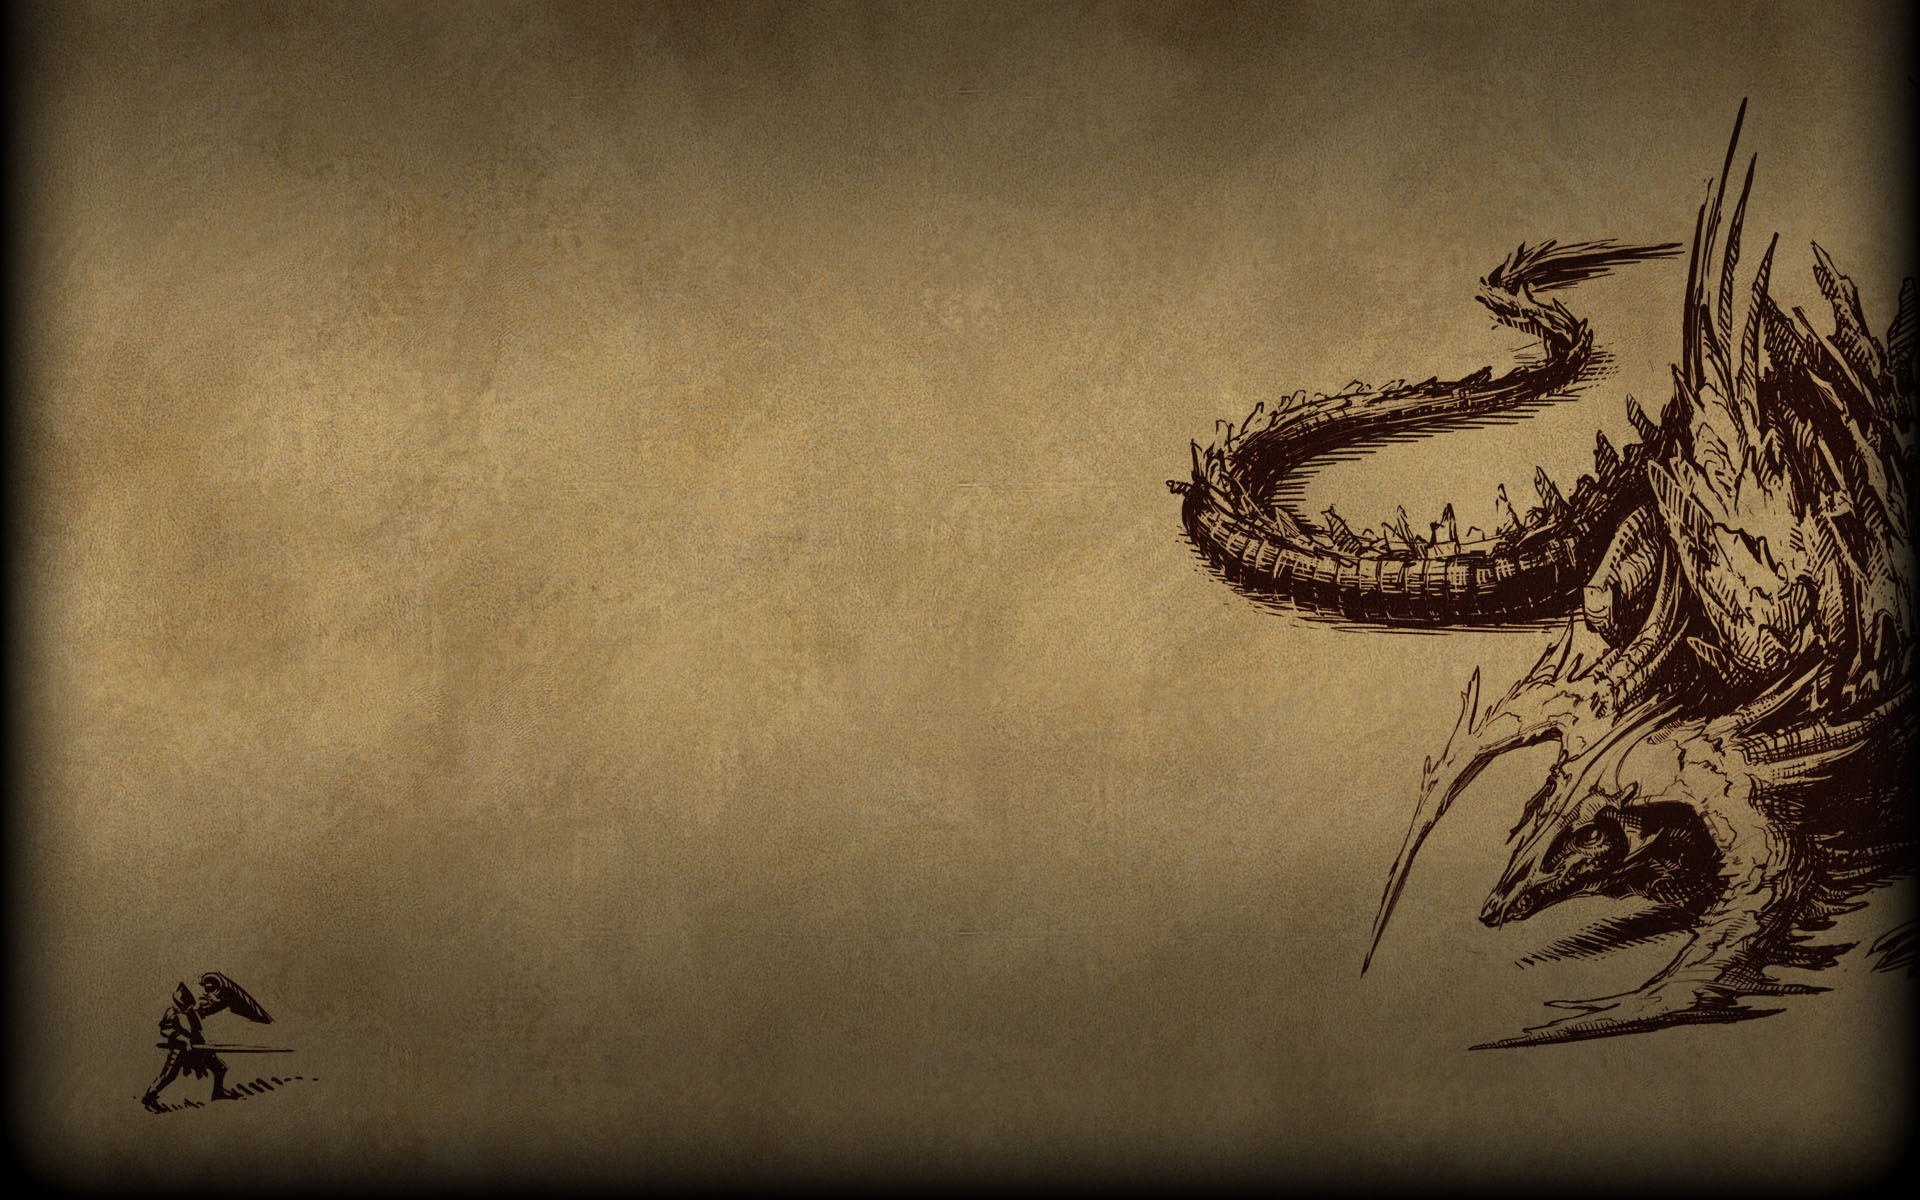 Pillars Of Eternity Wallpaper: Pillars Of Eternity Computer Wallpapers, Desktop